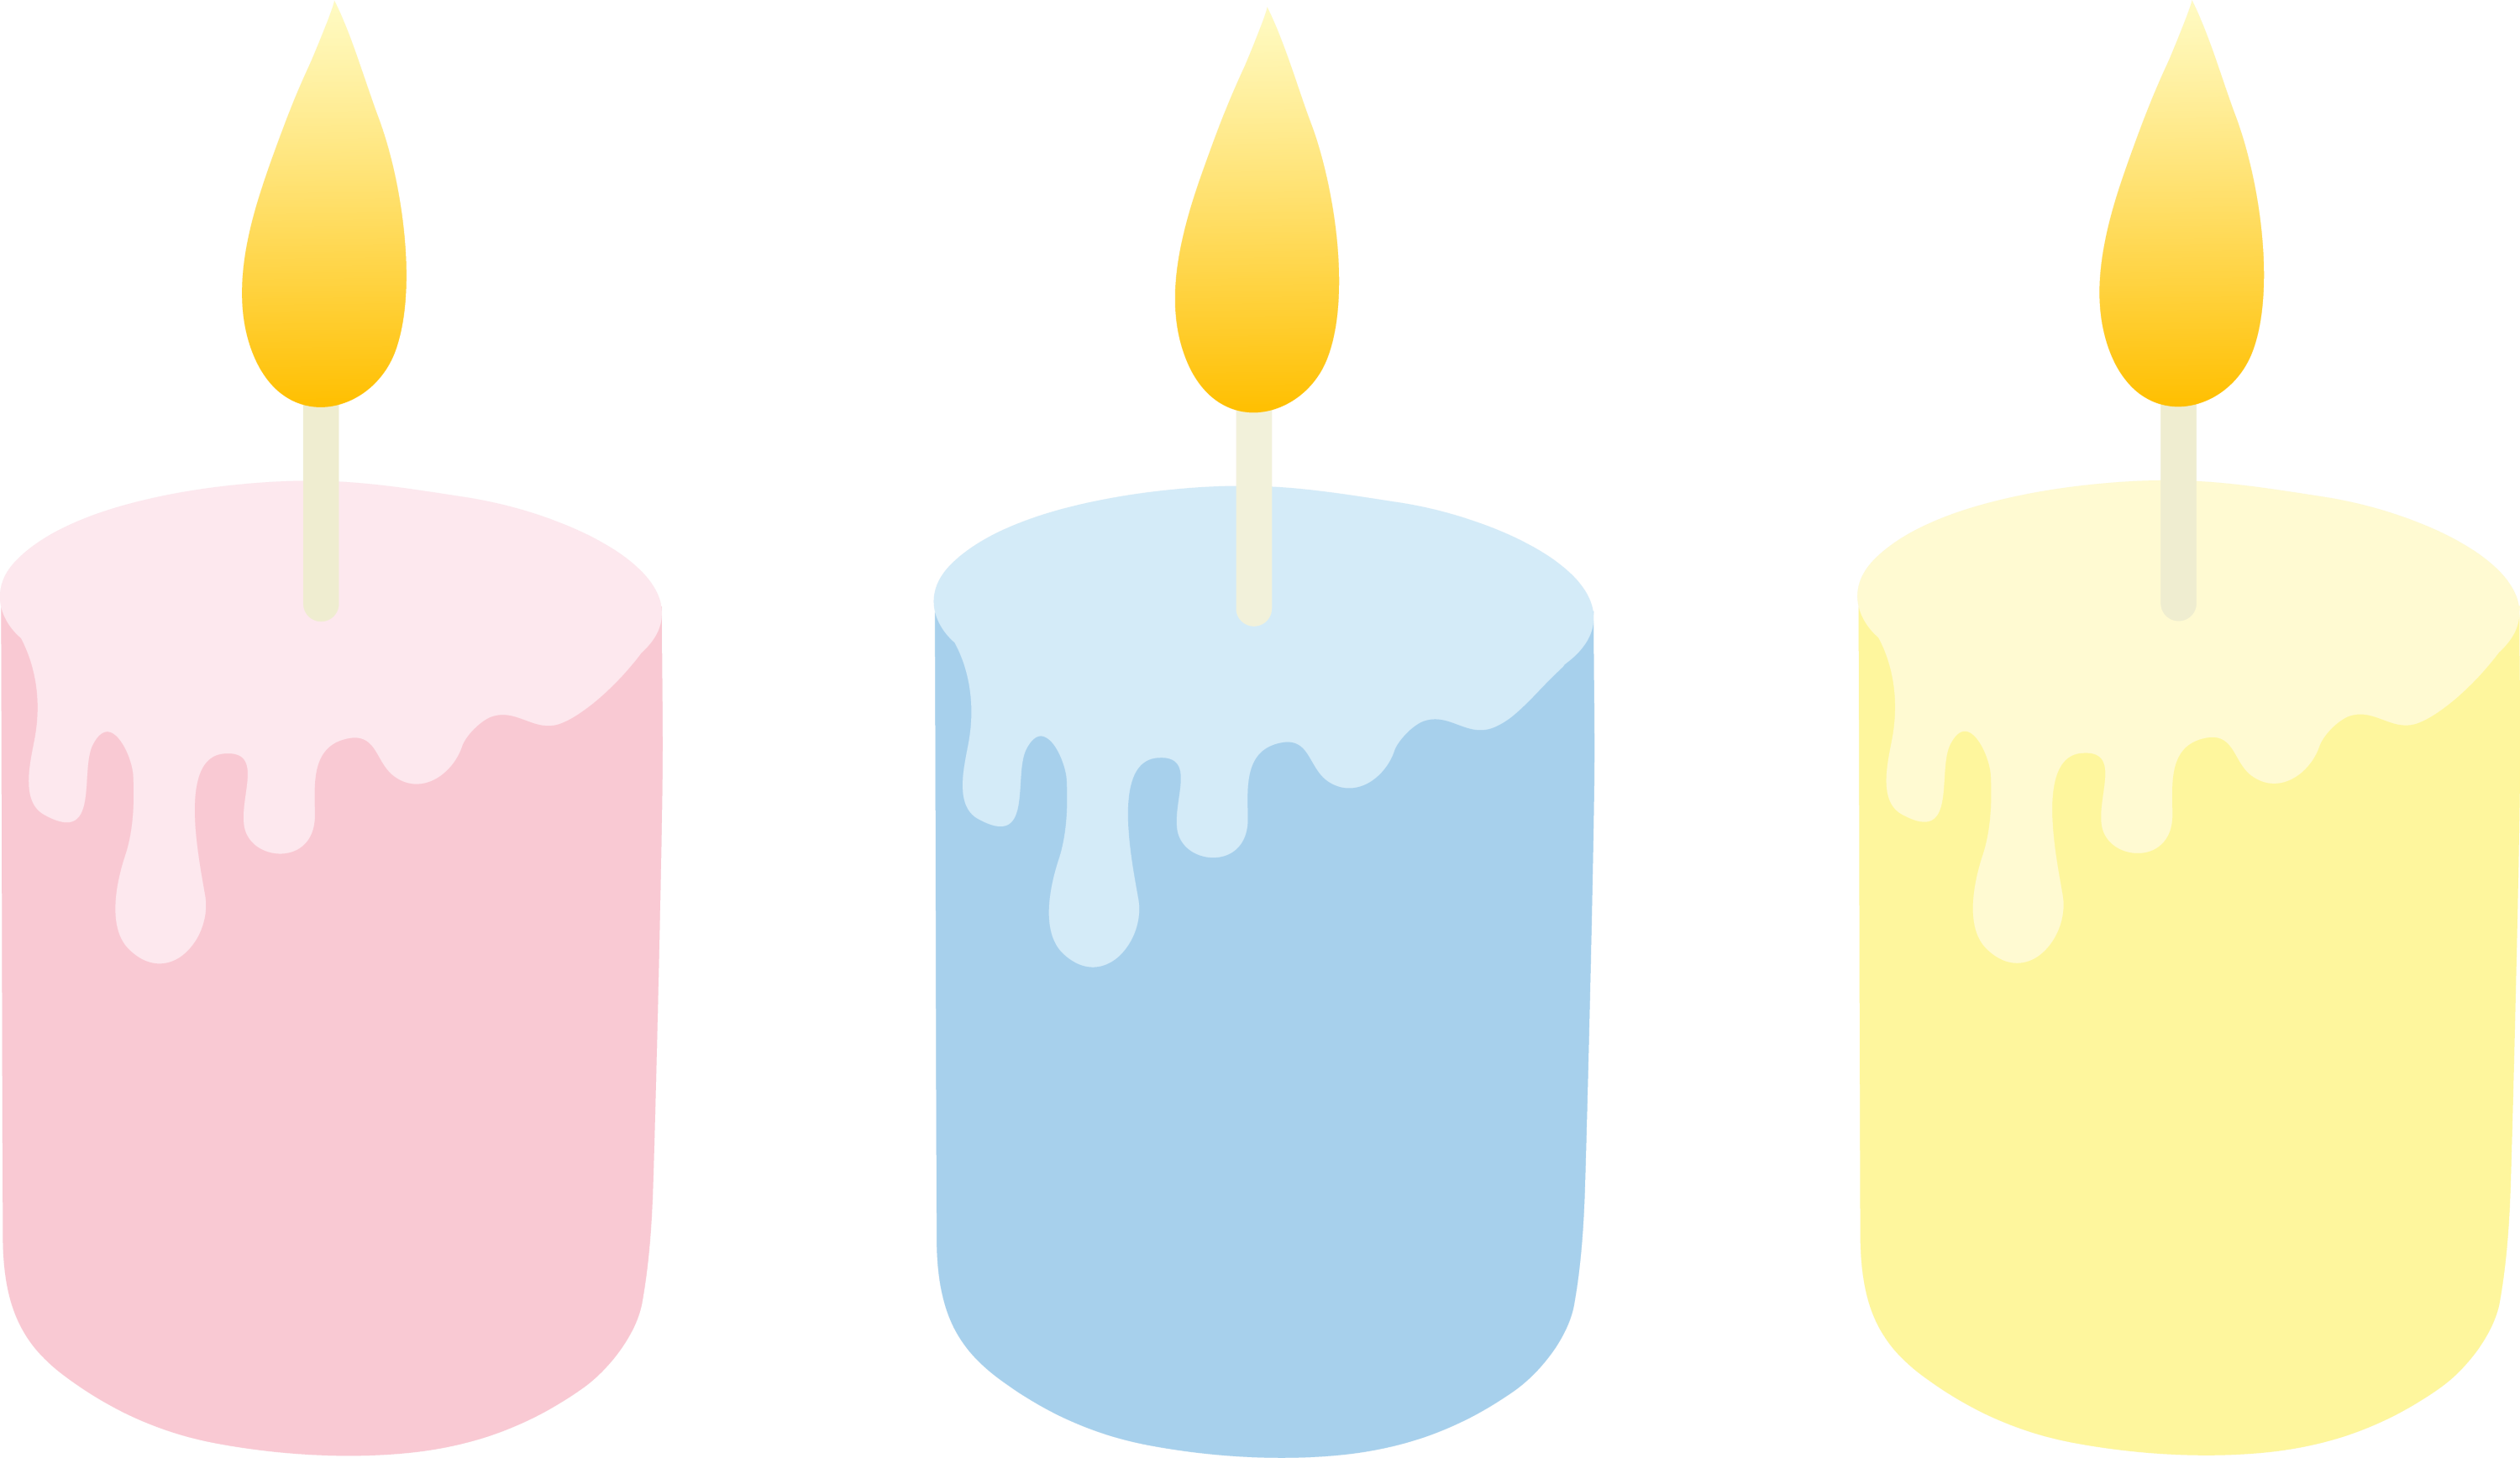 Birthday Candles Transparent Png Clip Art Image: Three Pastel Colored Candles